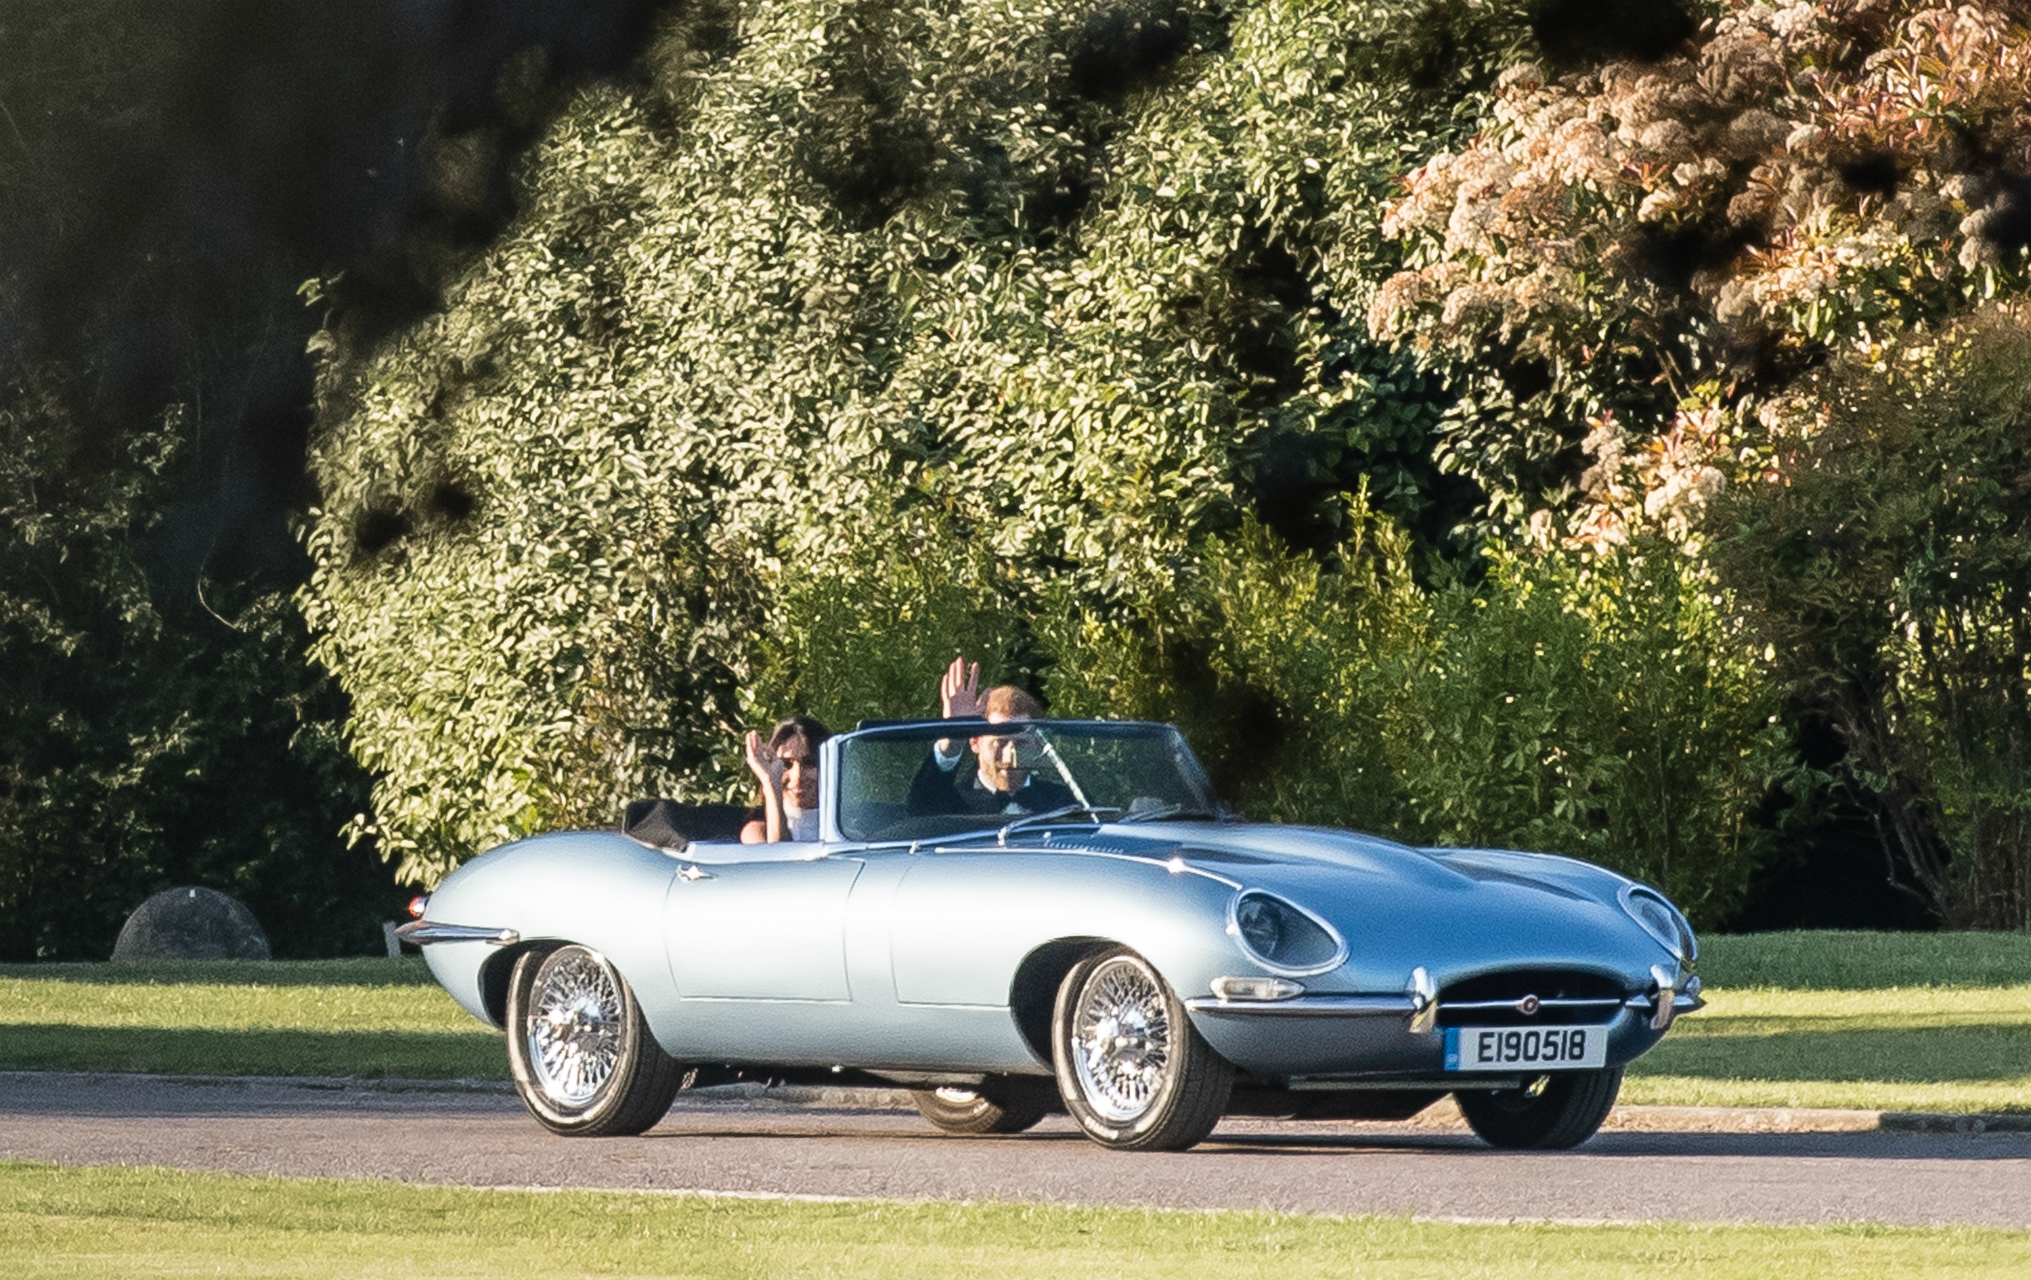 Meghan Markle and Prince Harry in a silver blue Jaguar E-Type Concept Zero